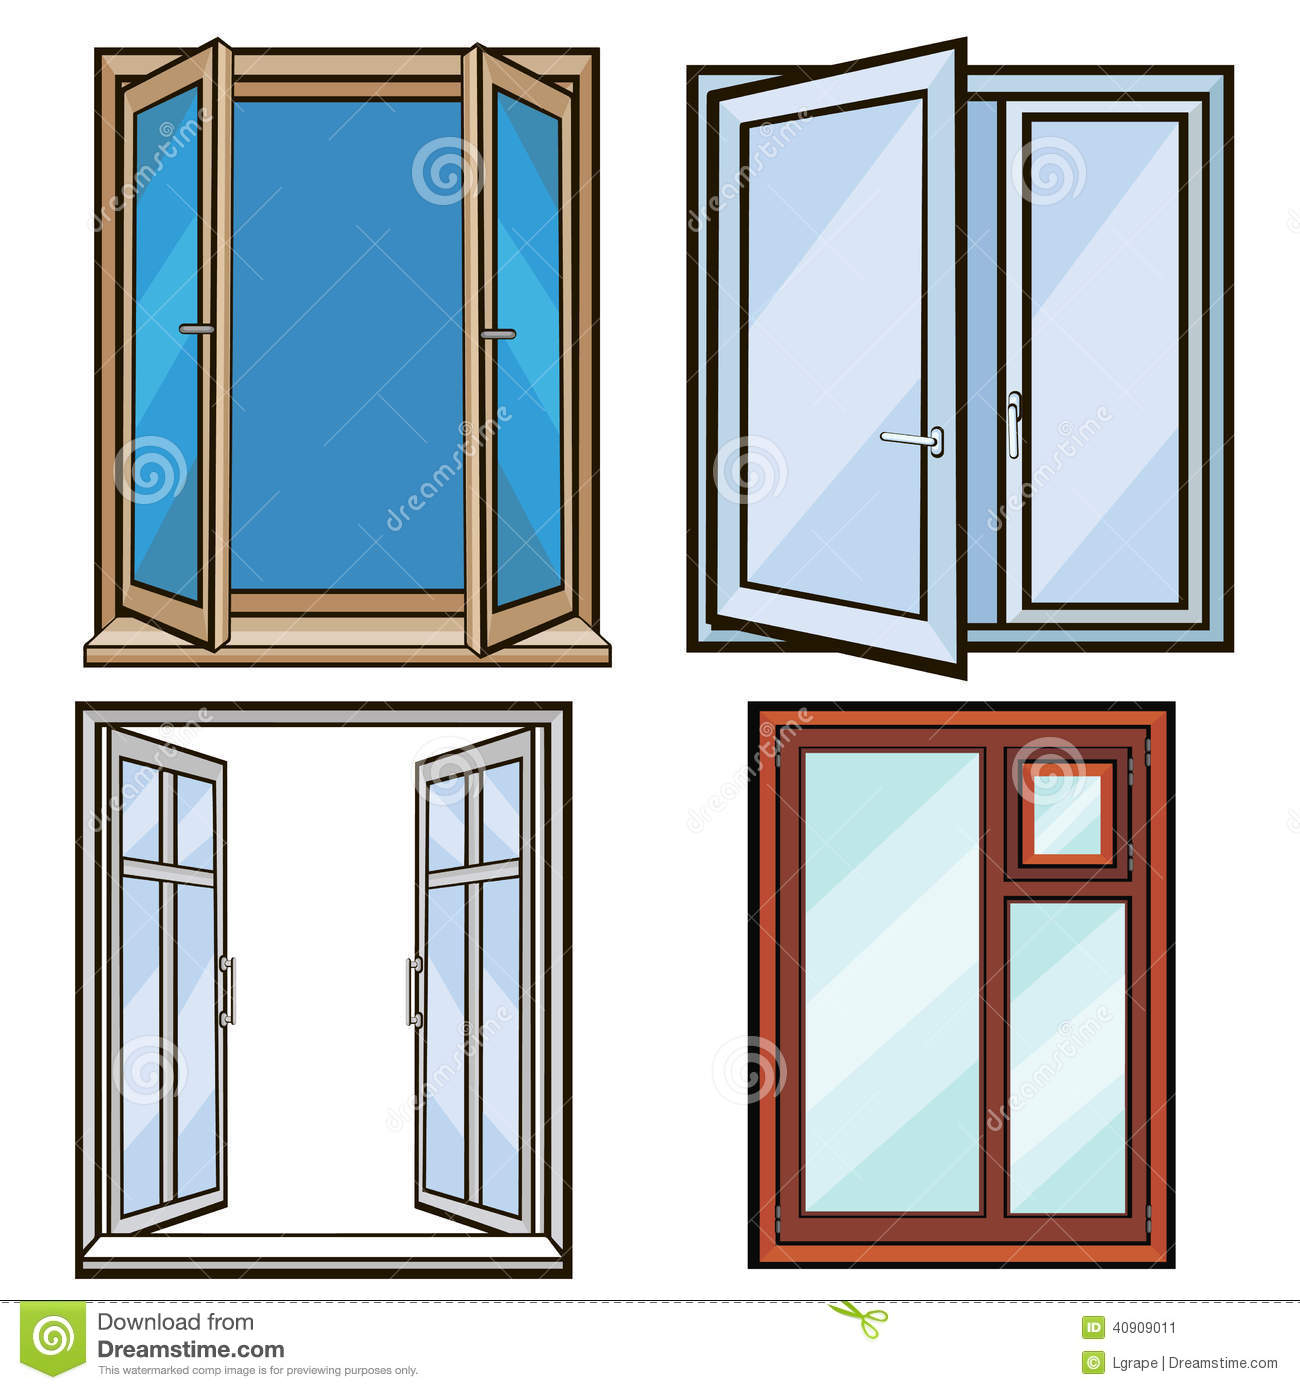 Closed and open windows cartoon style stock vector for Window design clipart